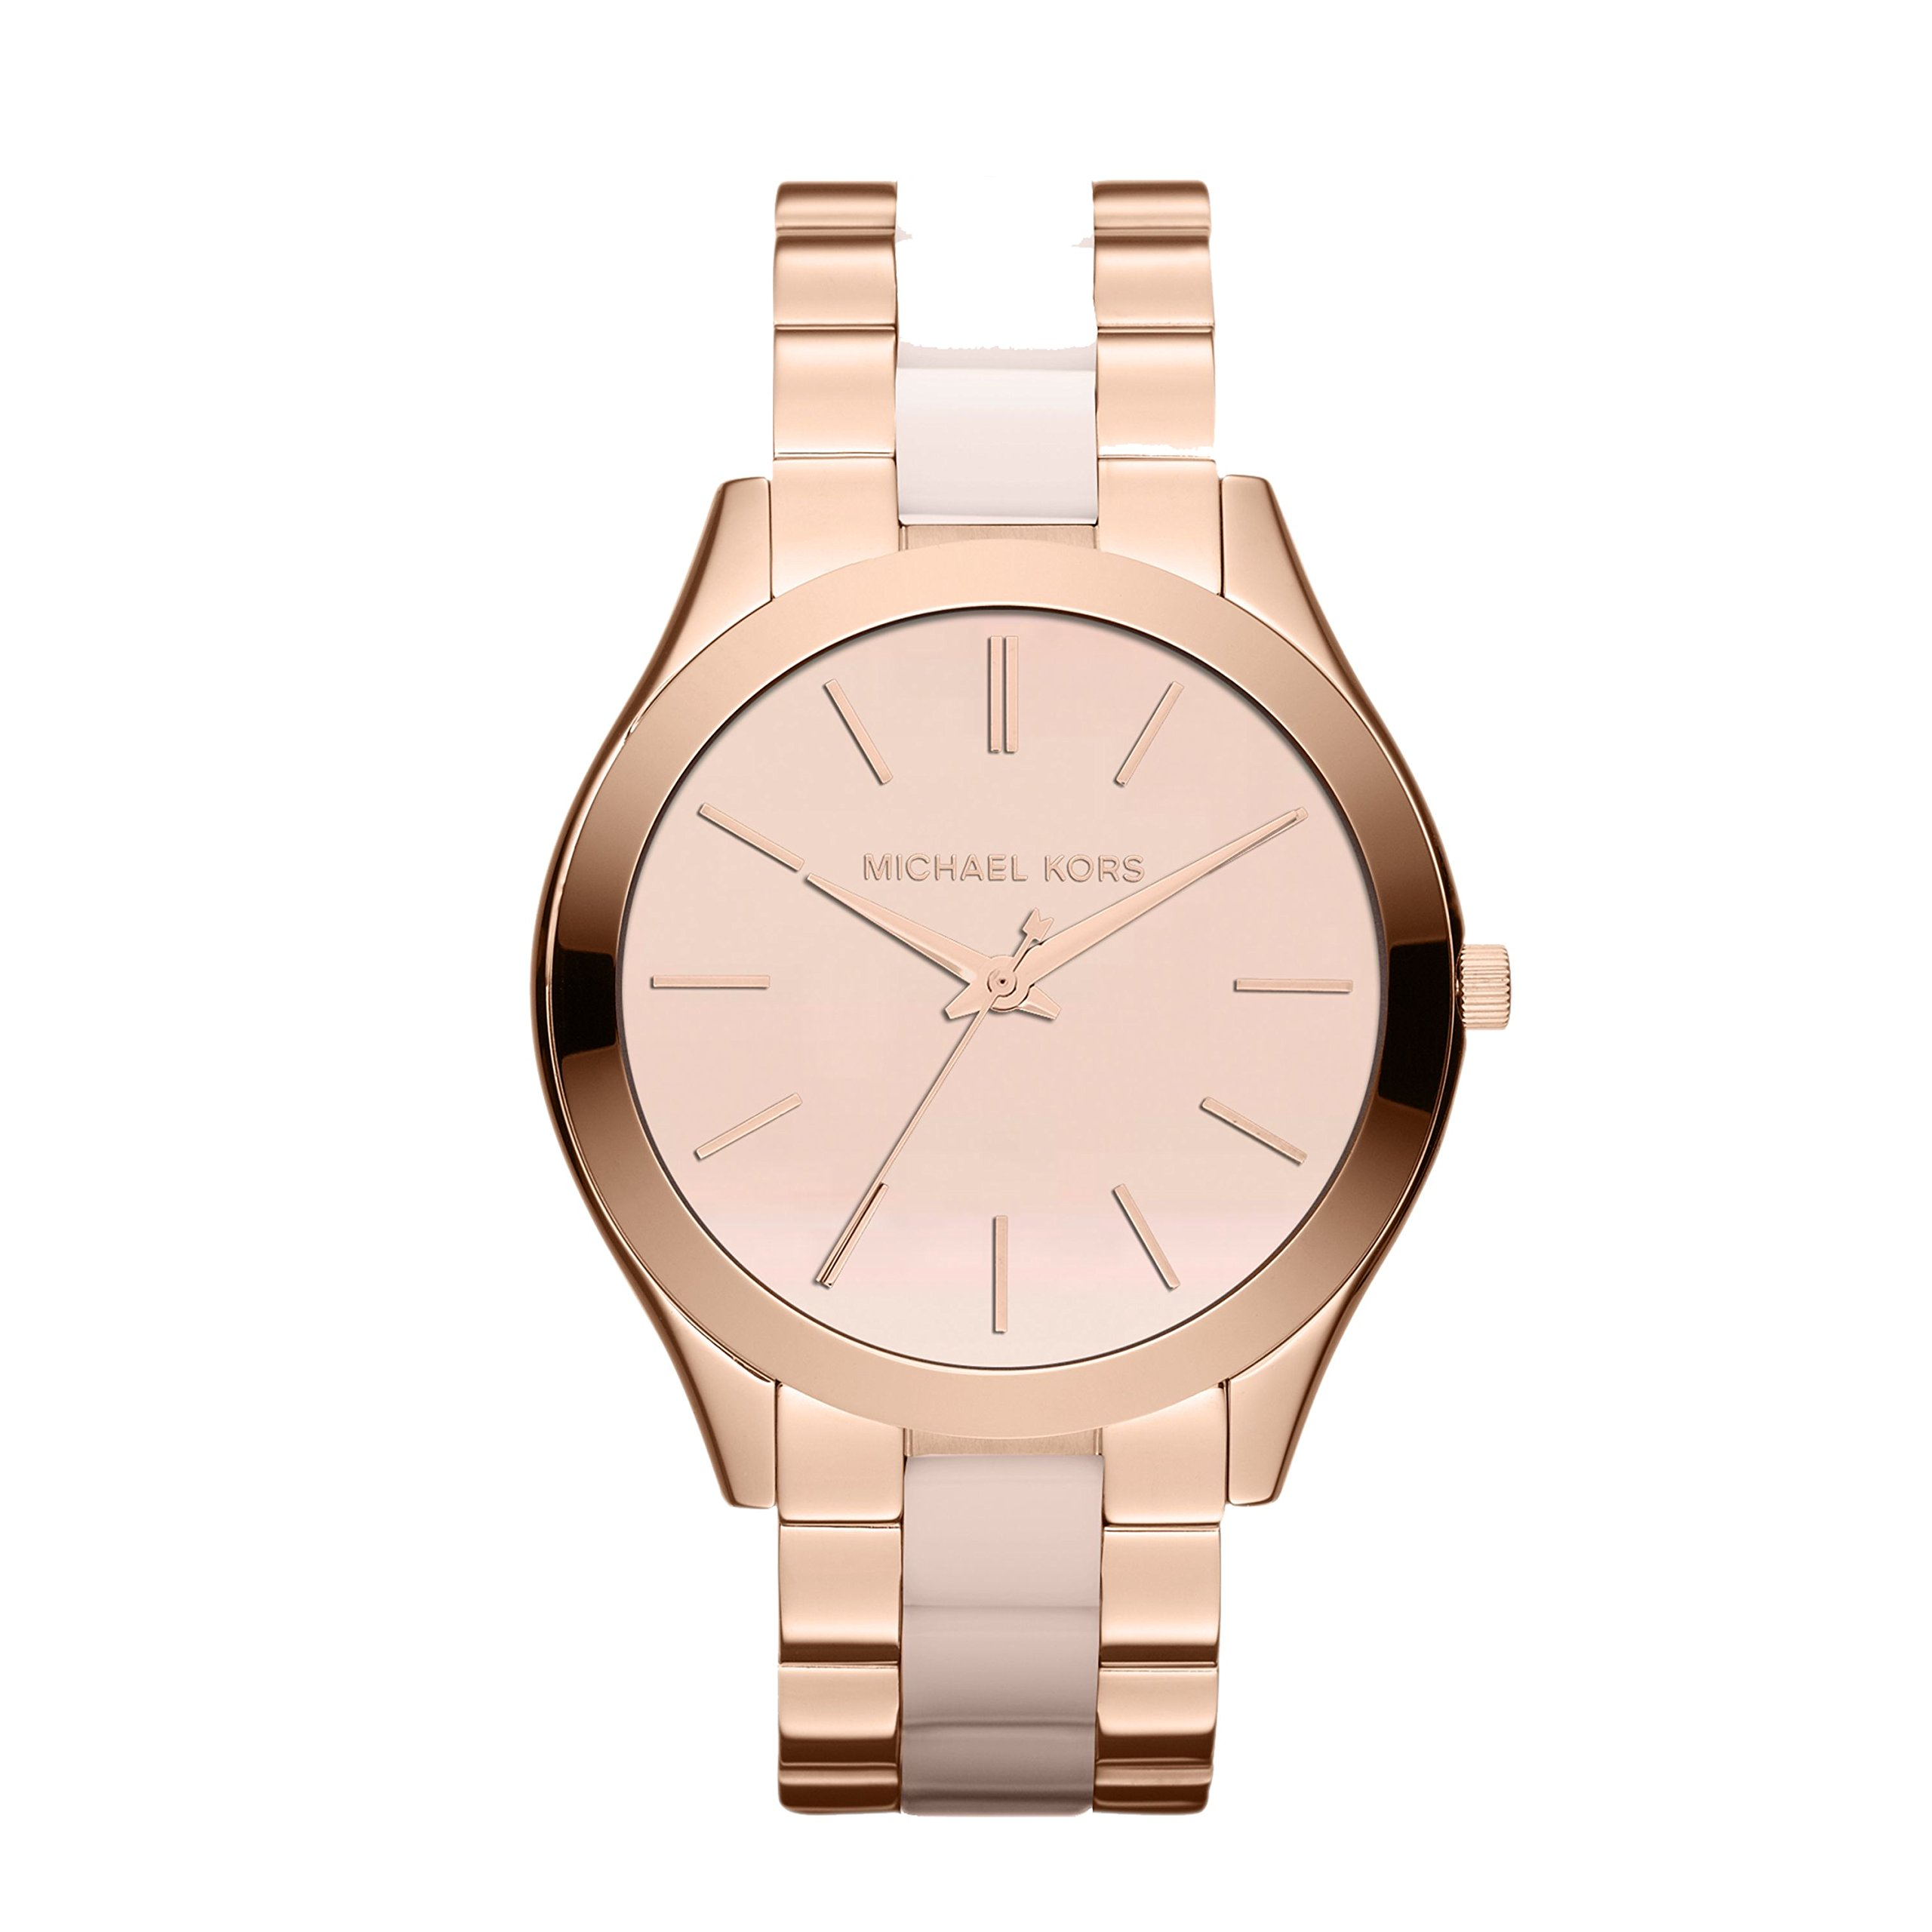 Michael Kors Women's Slim Runway Rose Gold-Tone Watch MK4294